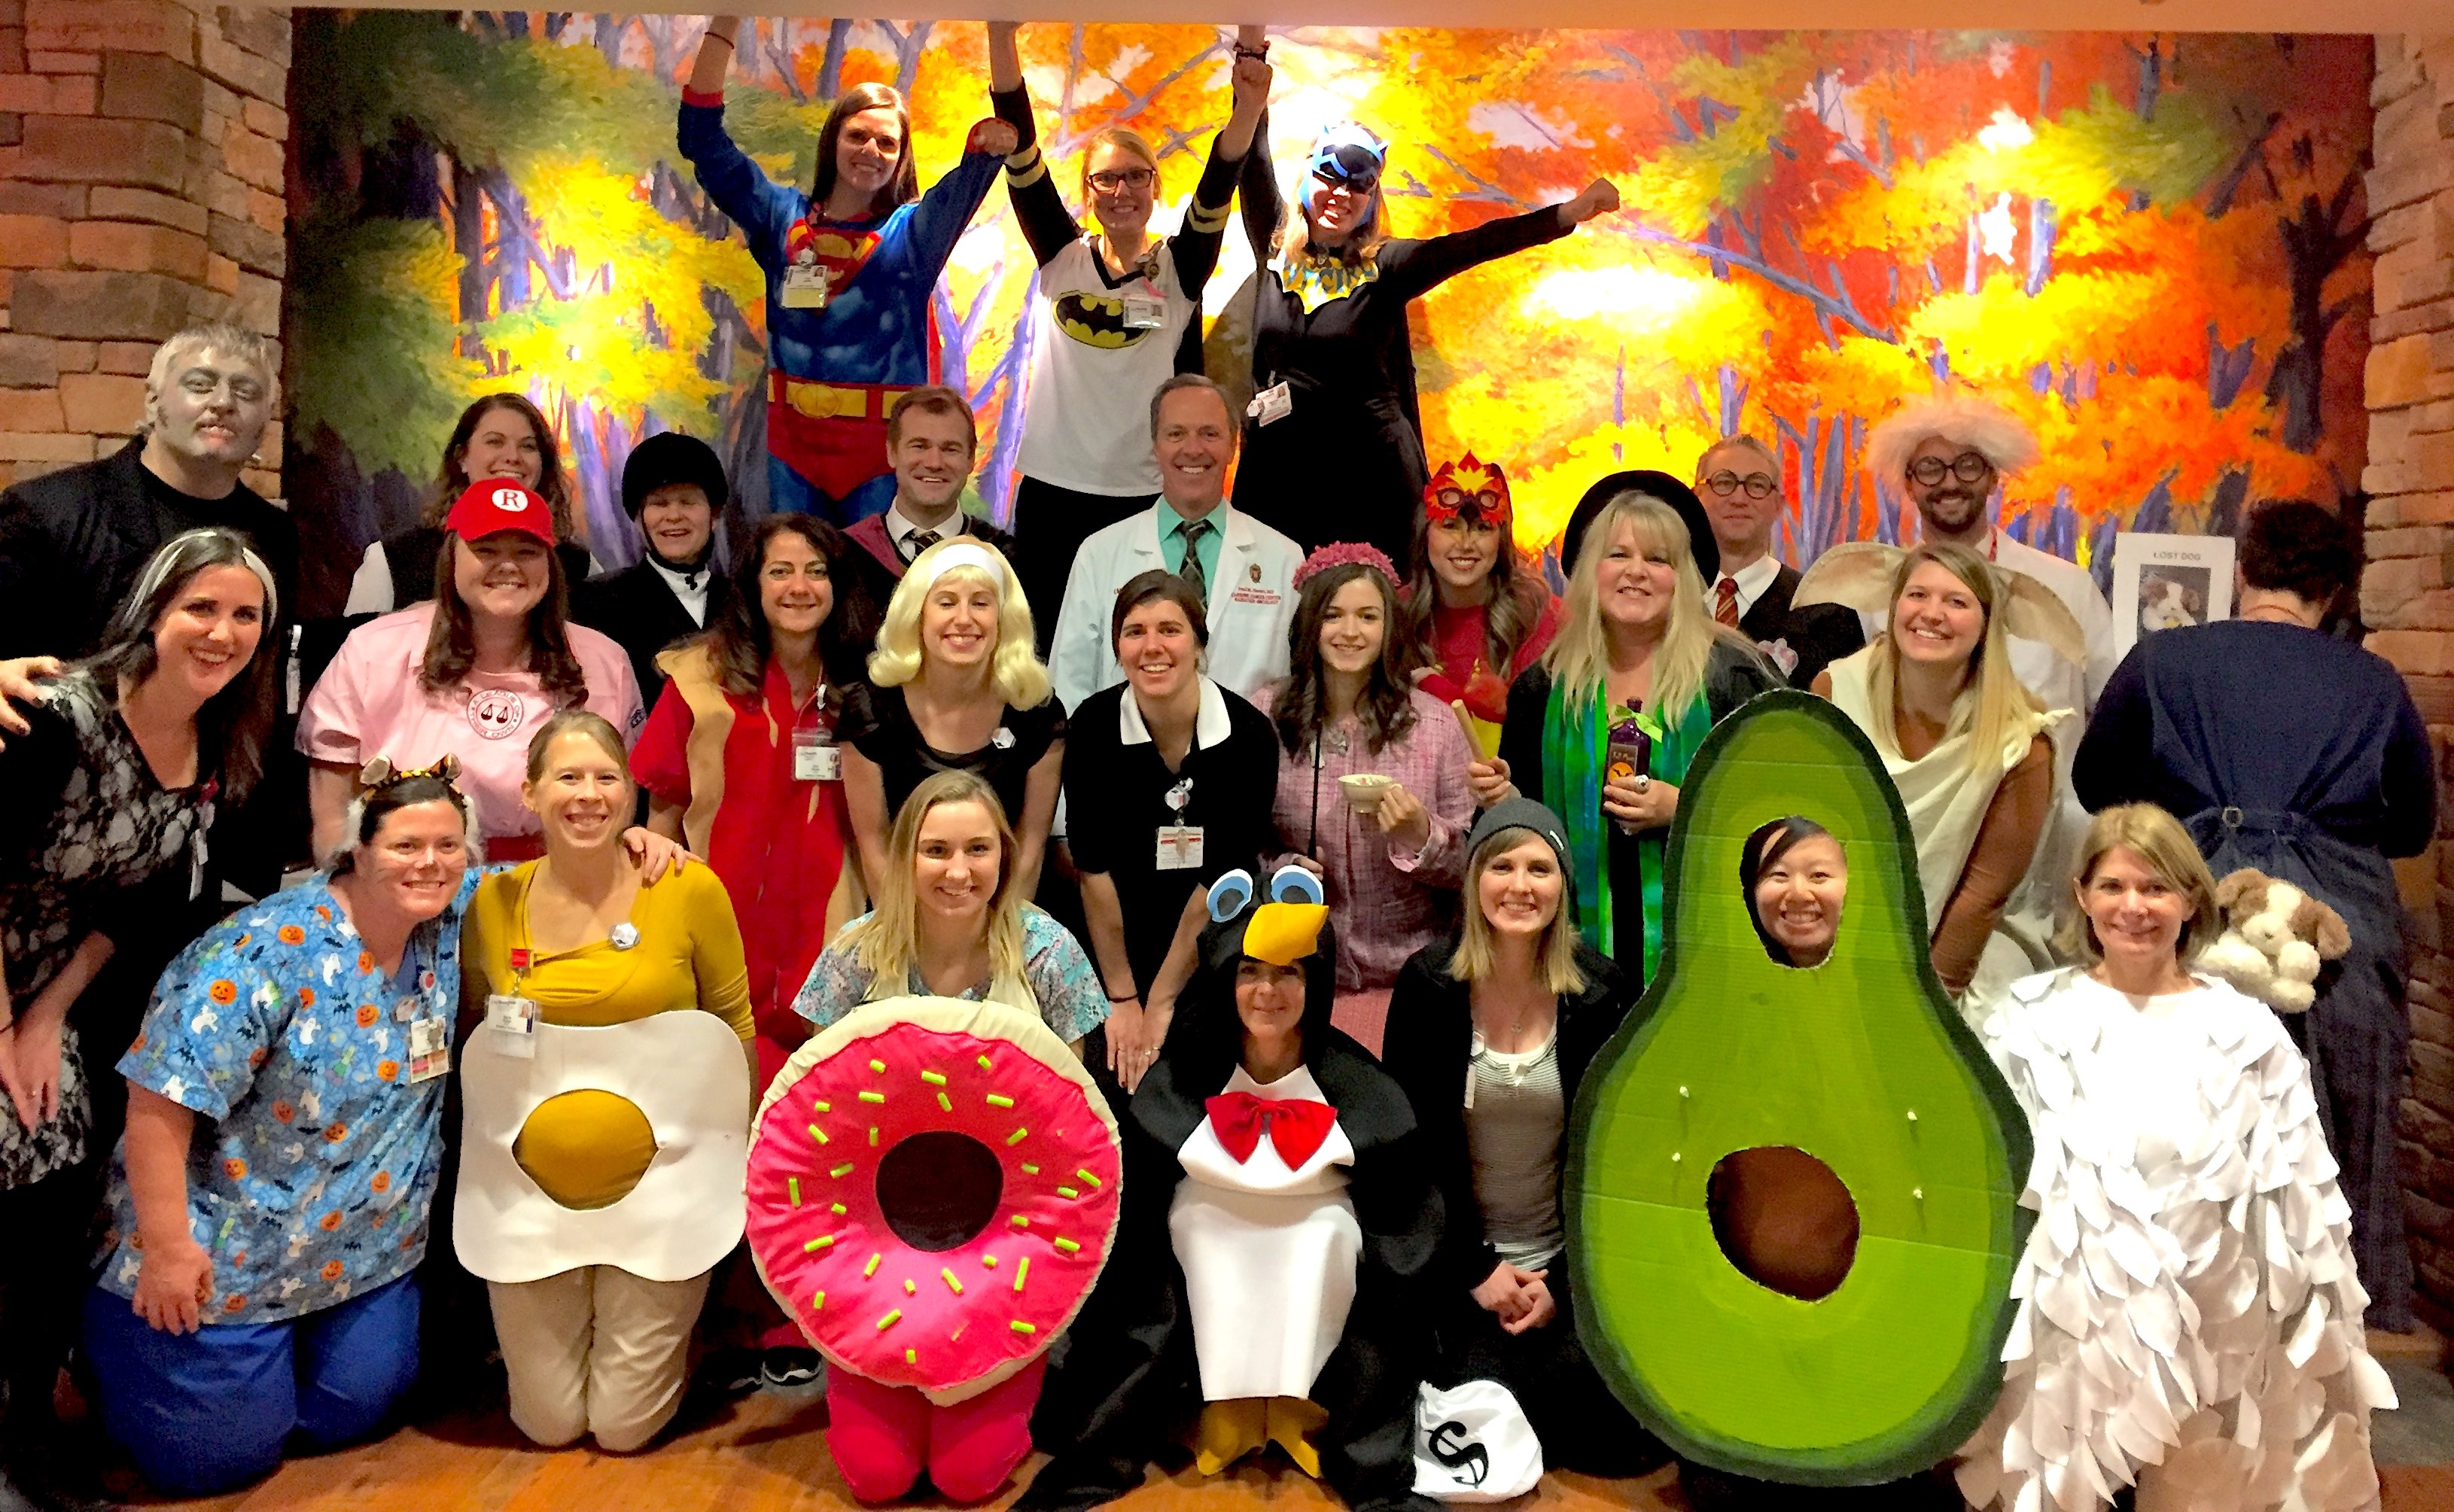 UW Radiation Oncology staff dressed for Halloween